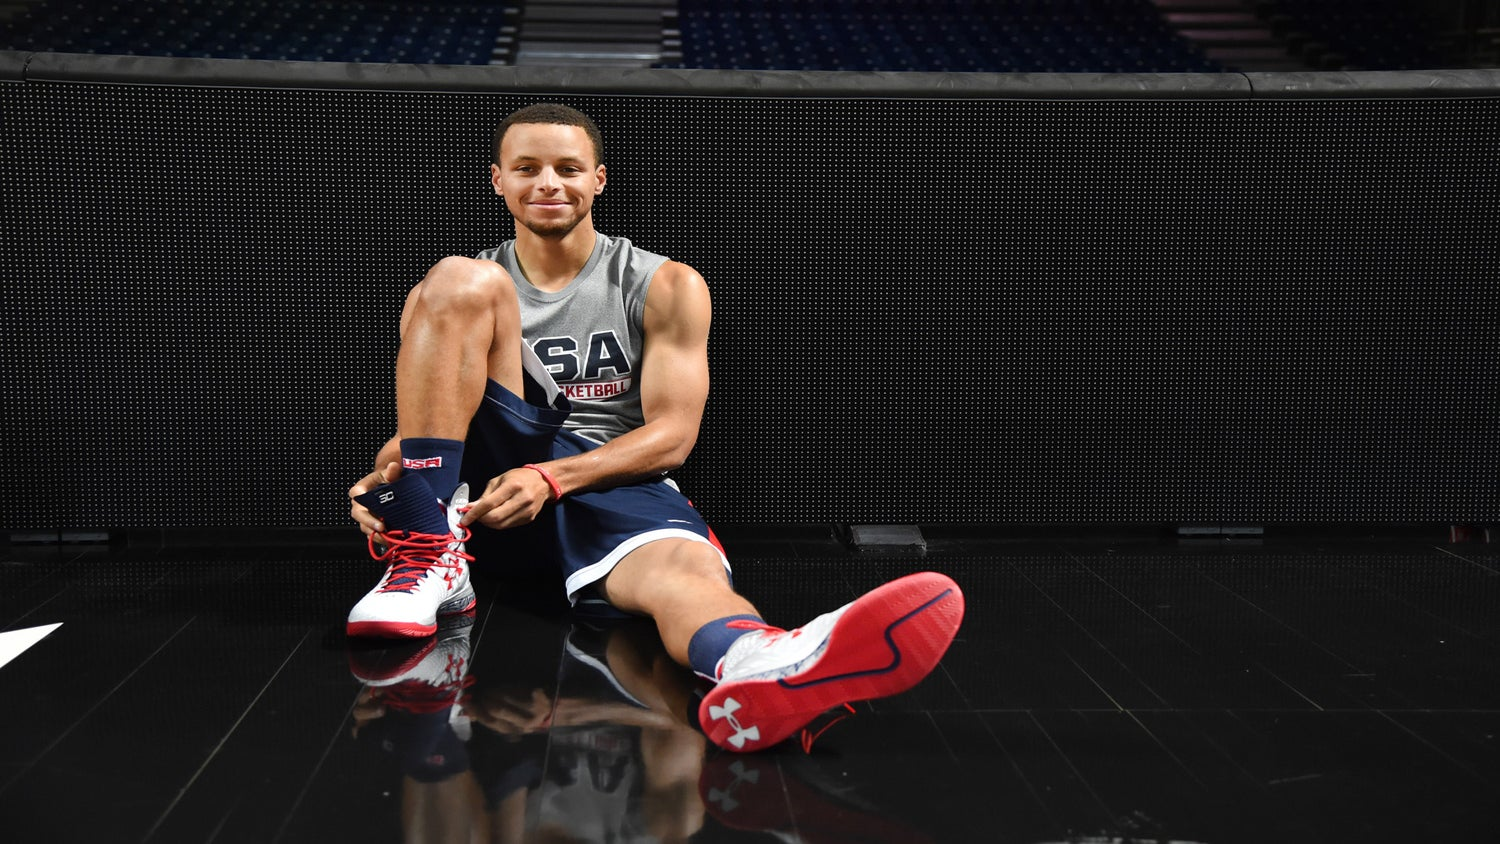 The Stephen Curry Limited Edition Sneakers With Under Armour are Completely Sold Out